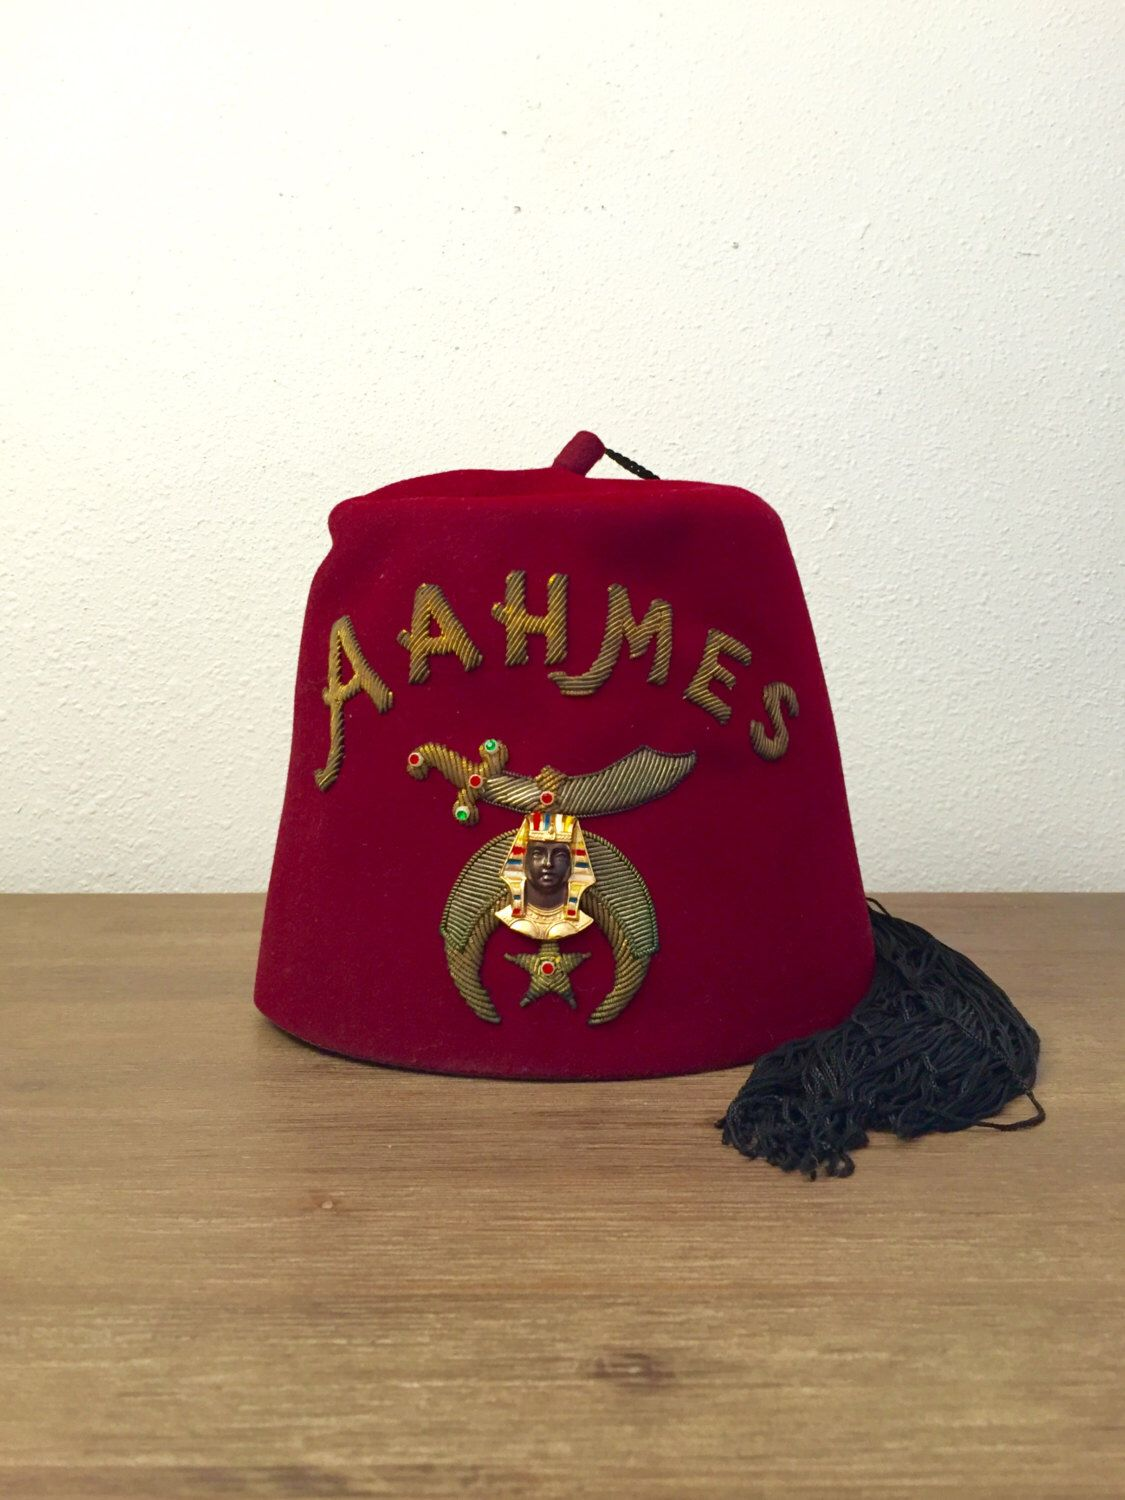 6c05b114d Aahmes Shriner Fez with Tassel; Shriners Fez; Grand Poobah Hat ...